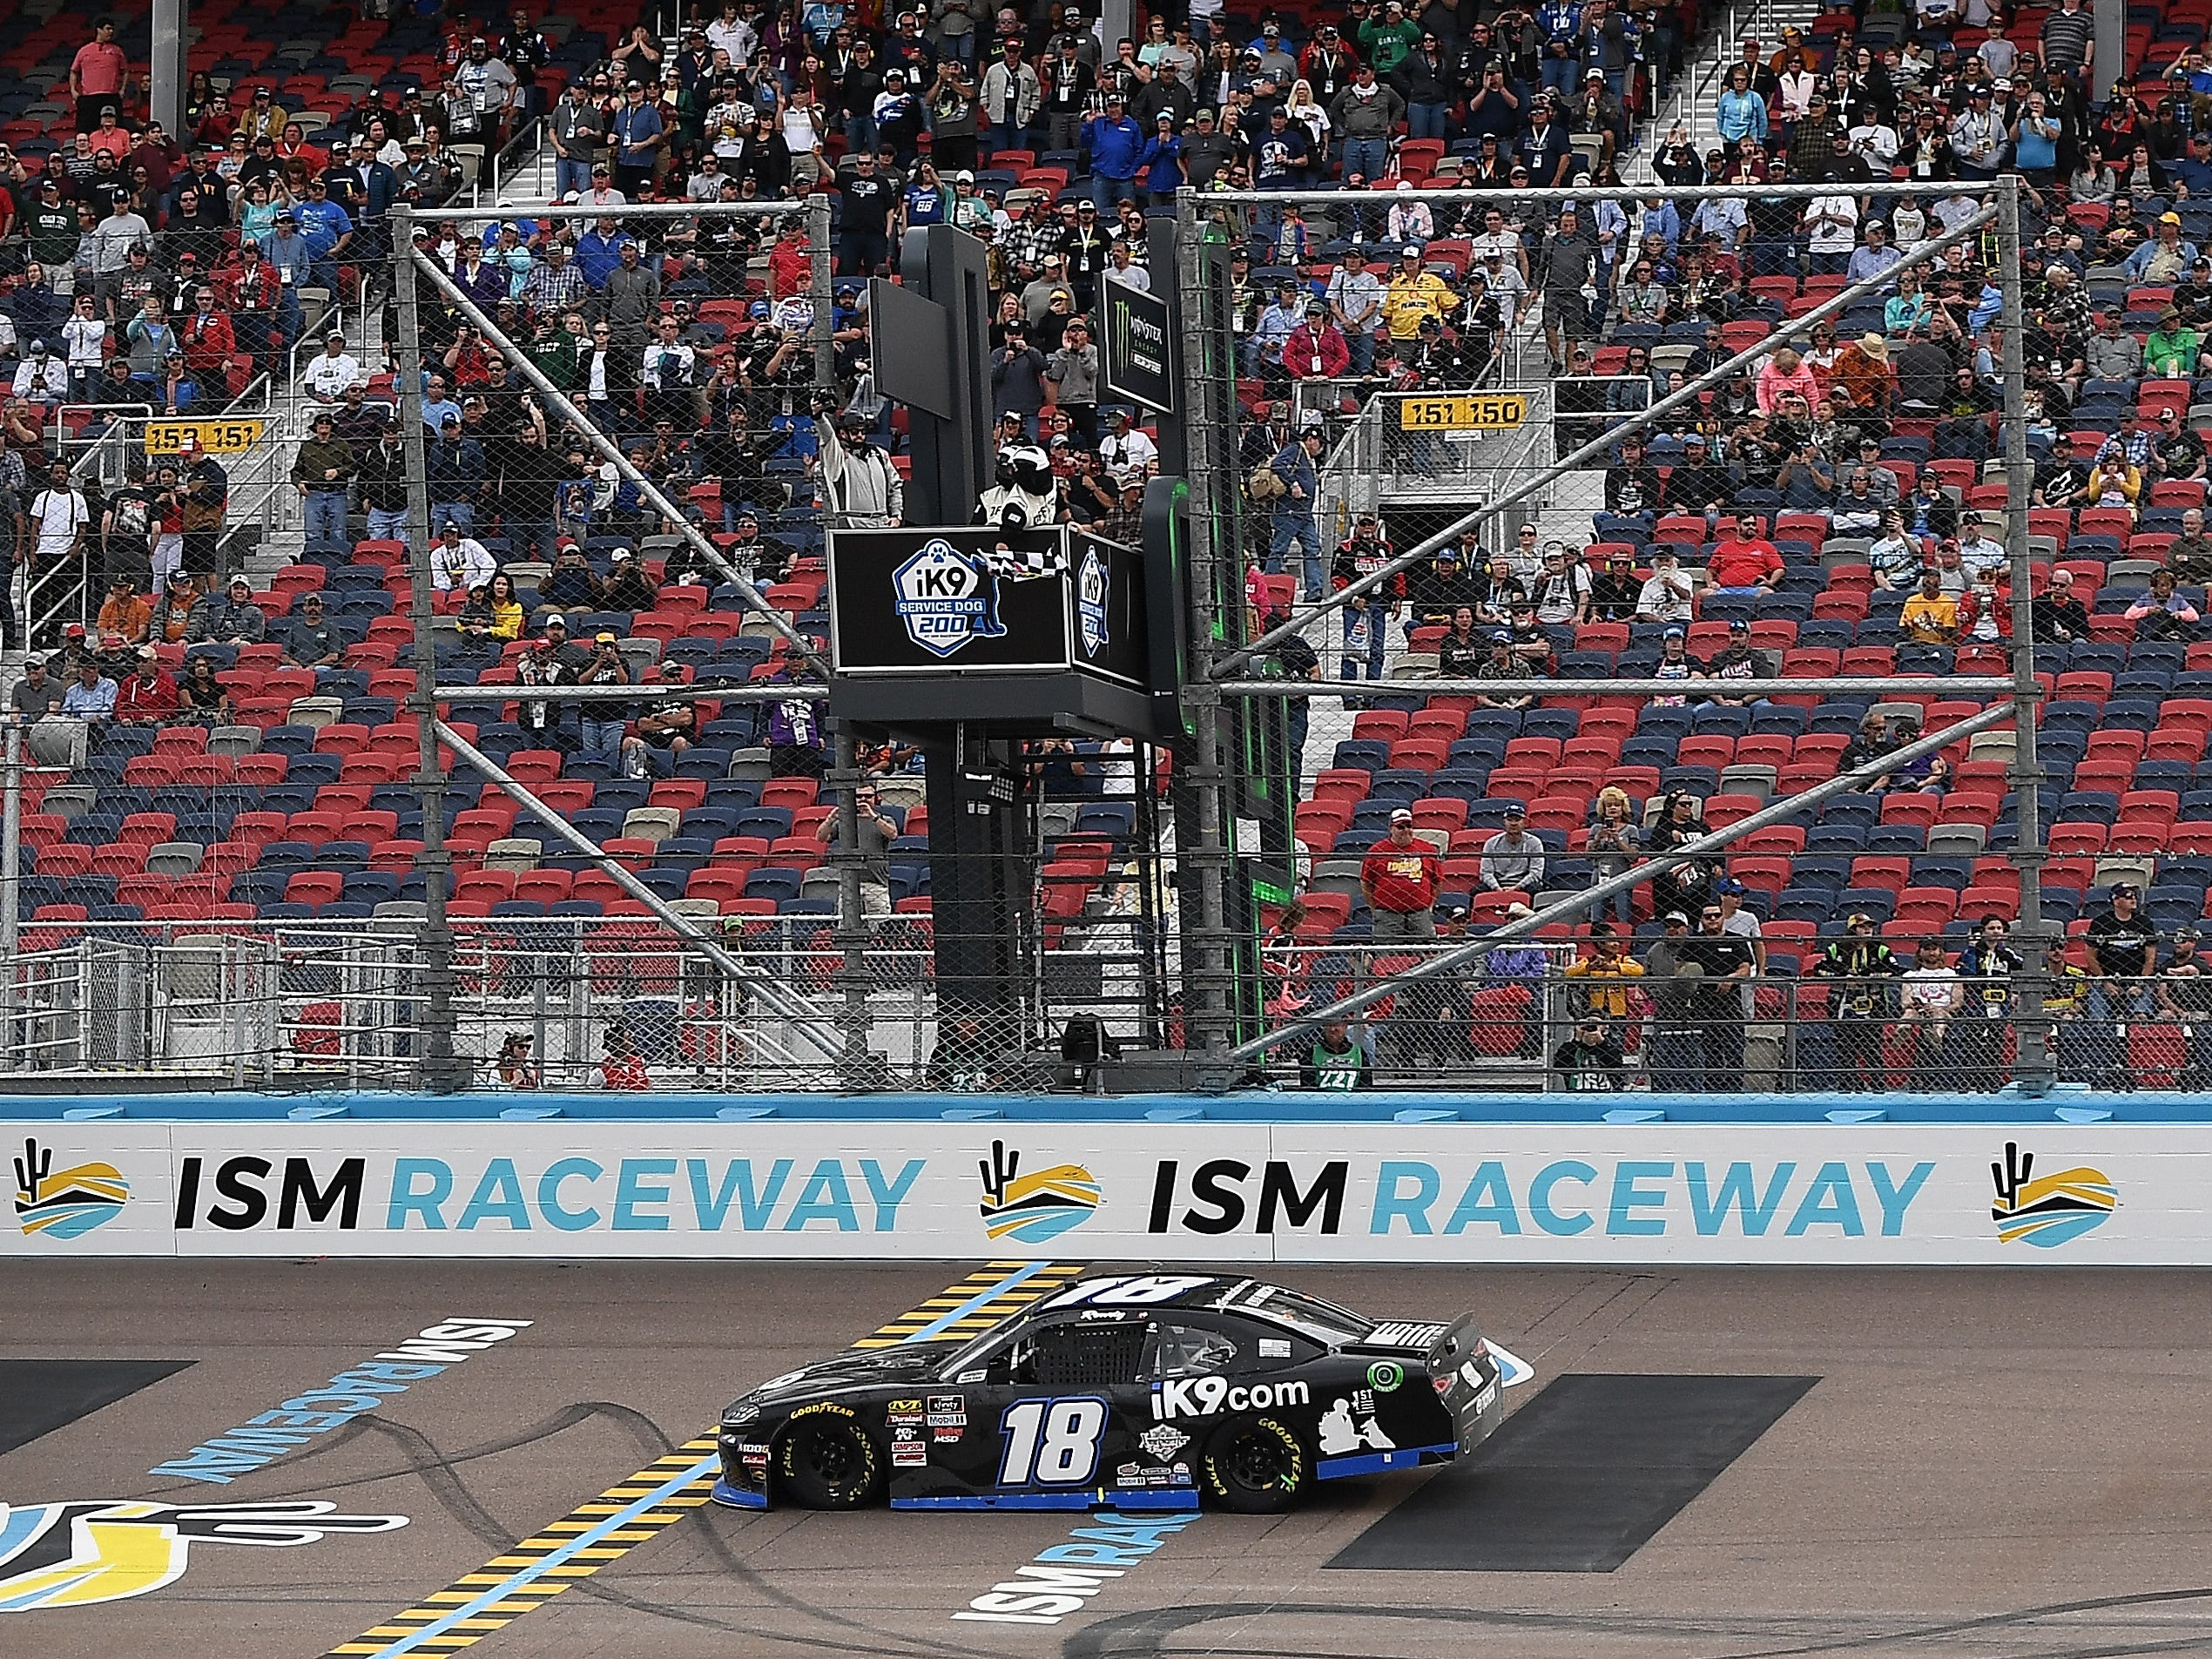 AVONDALE, AZ - MARCH 09:  Kyle Busch, driver of the #18 Extreme Concepts/iK9 Toyota, takes the checkered flag to win the NASCAR Xfinity Series iK9 Service Dog 200 at ISM Raceway on March 9, 2019 in Avondale, Arizona.